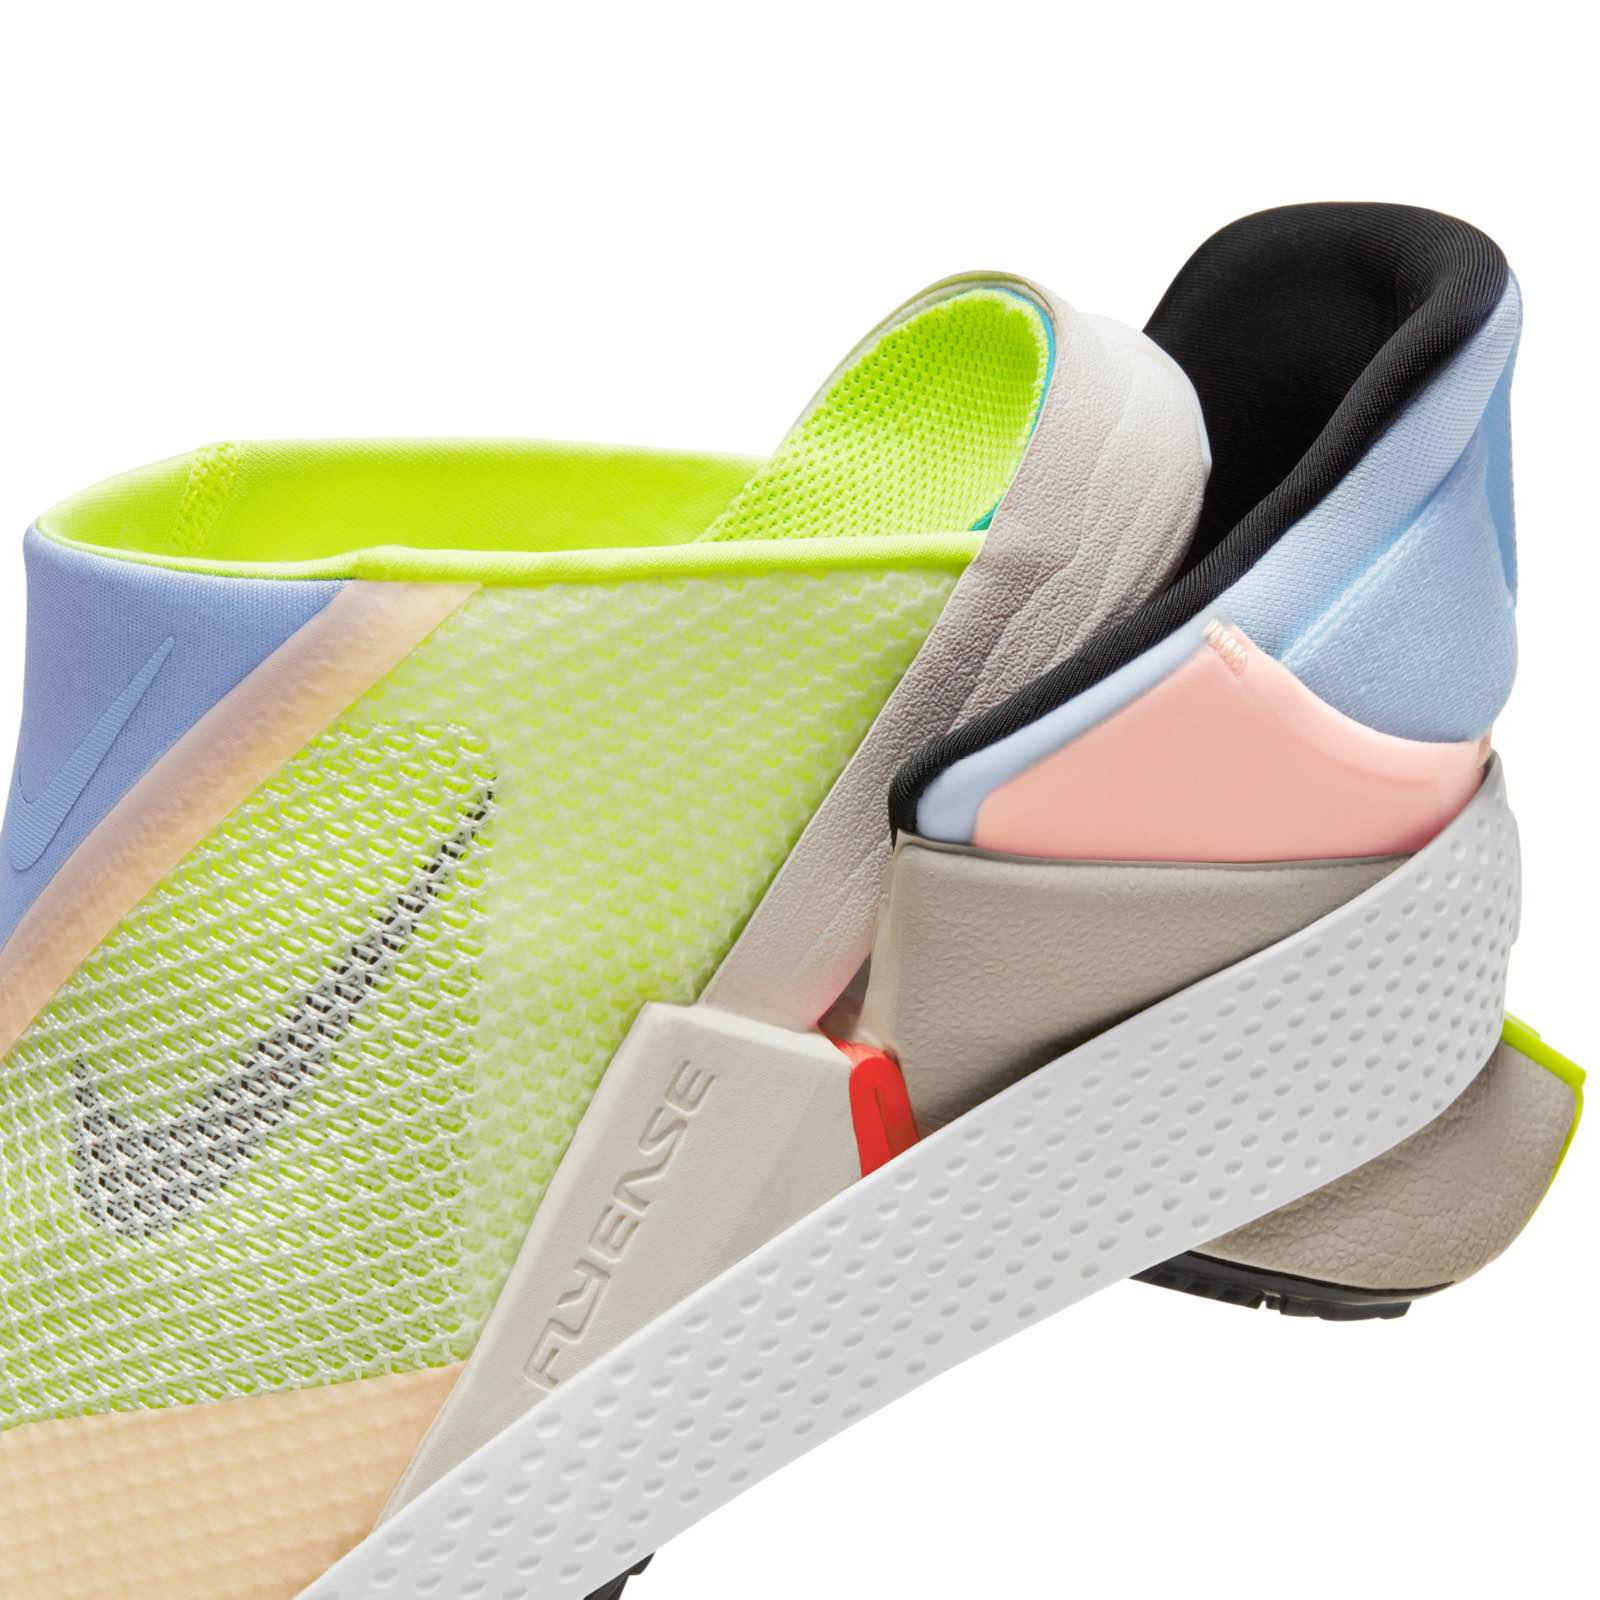 Hands-free sneakers are music to your feet!